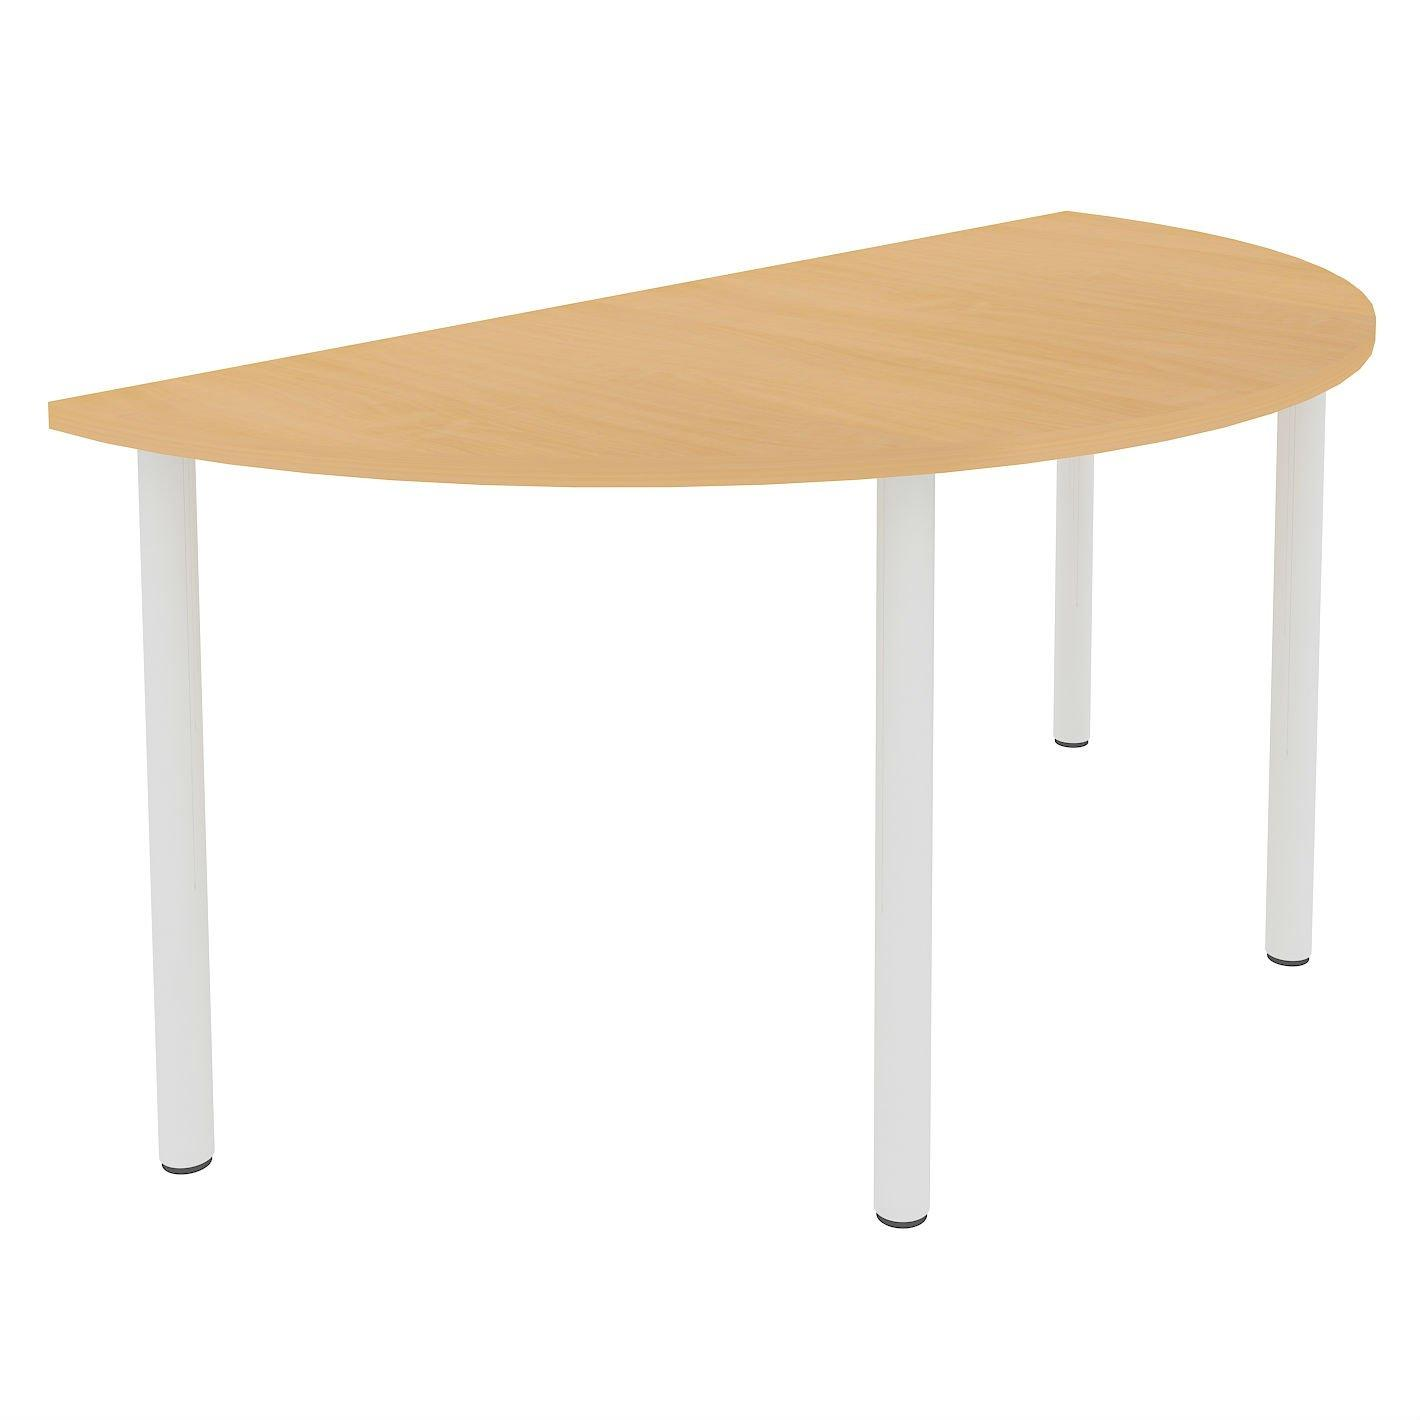 Half Round Fixed Pole Leg Meeting Table - W1600-0